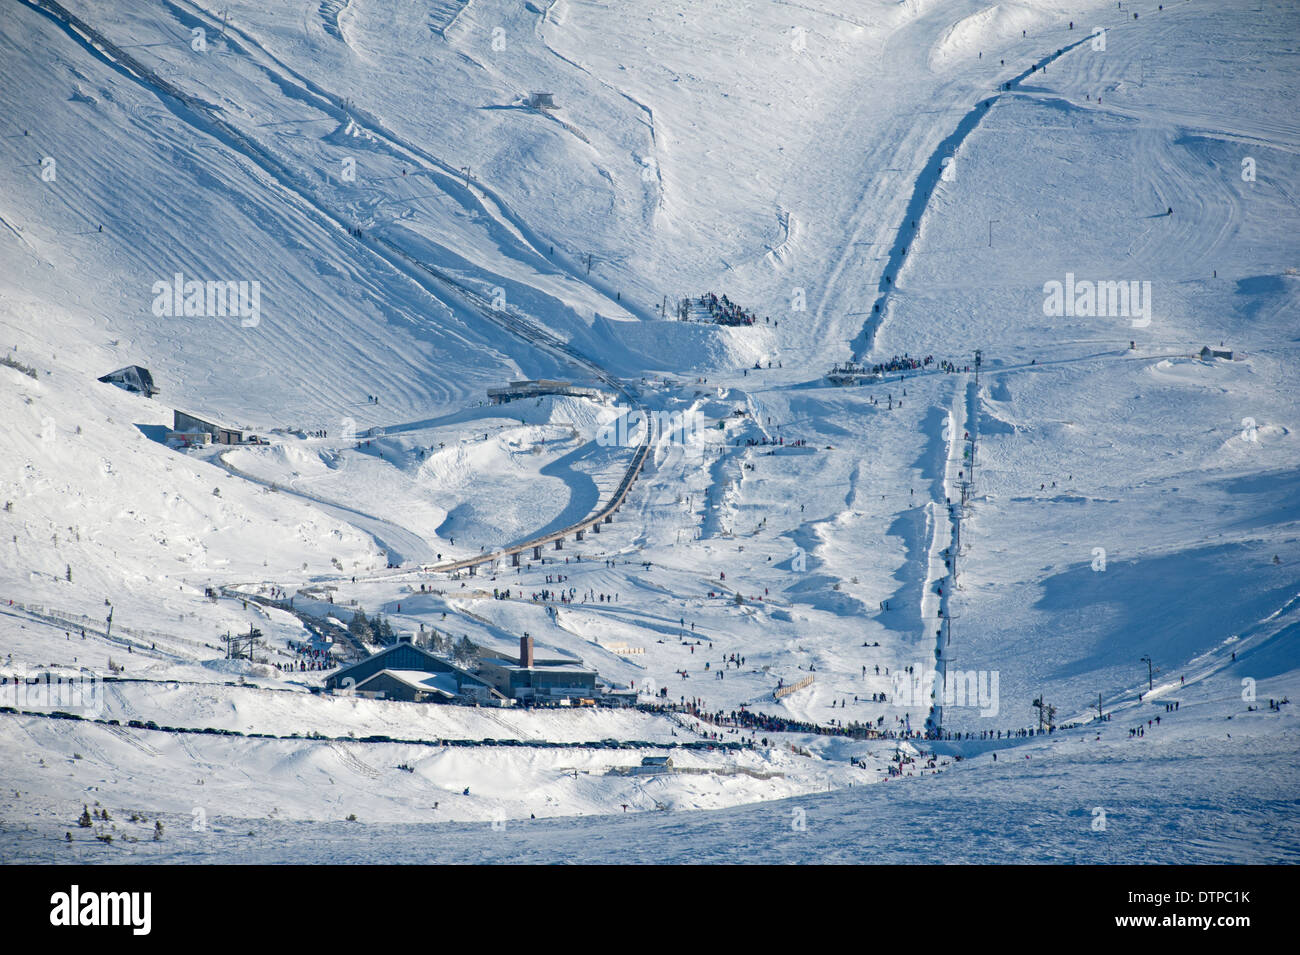 The Lower Cairngorm Ski ground round the White Lady and Gun barrel runs. SCO 9013 - Stock Image